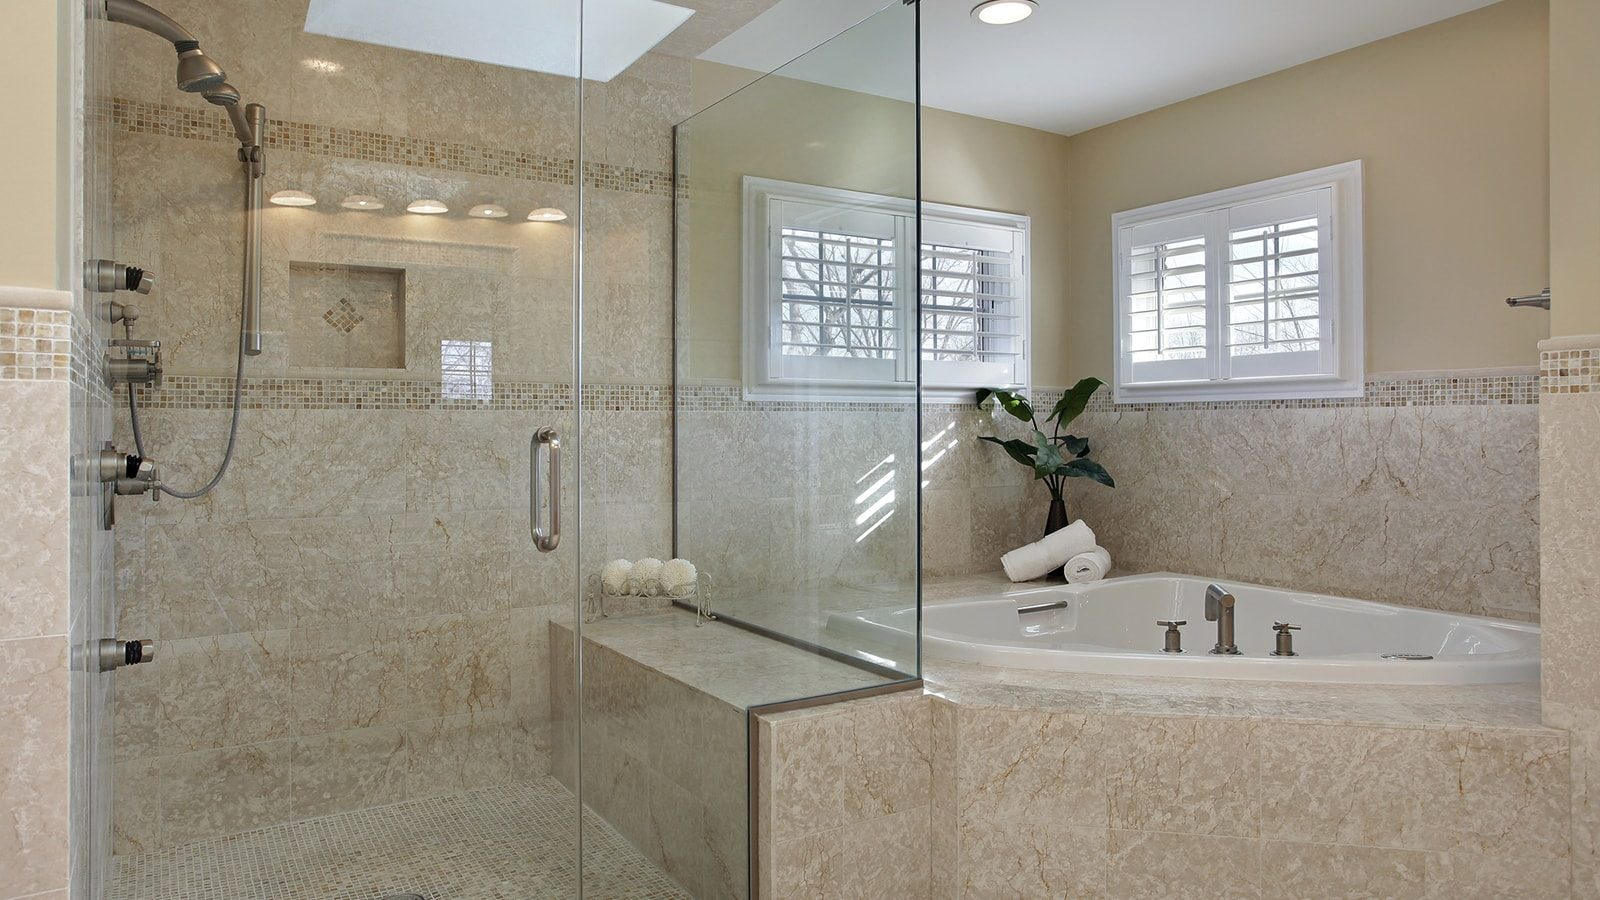 Looking for a Shower Upgrade? Check Out These Inspirational Walk-in Design Ideas